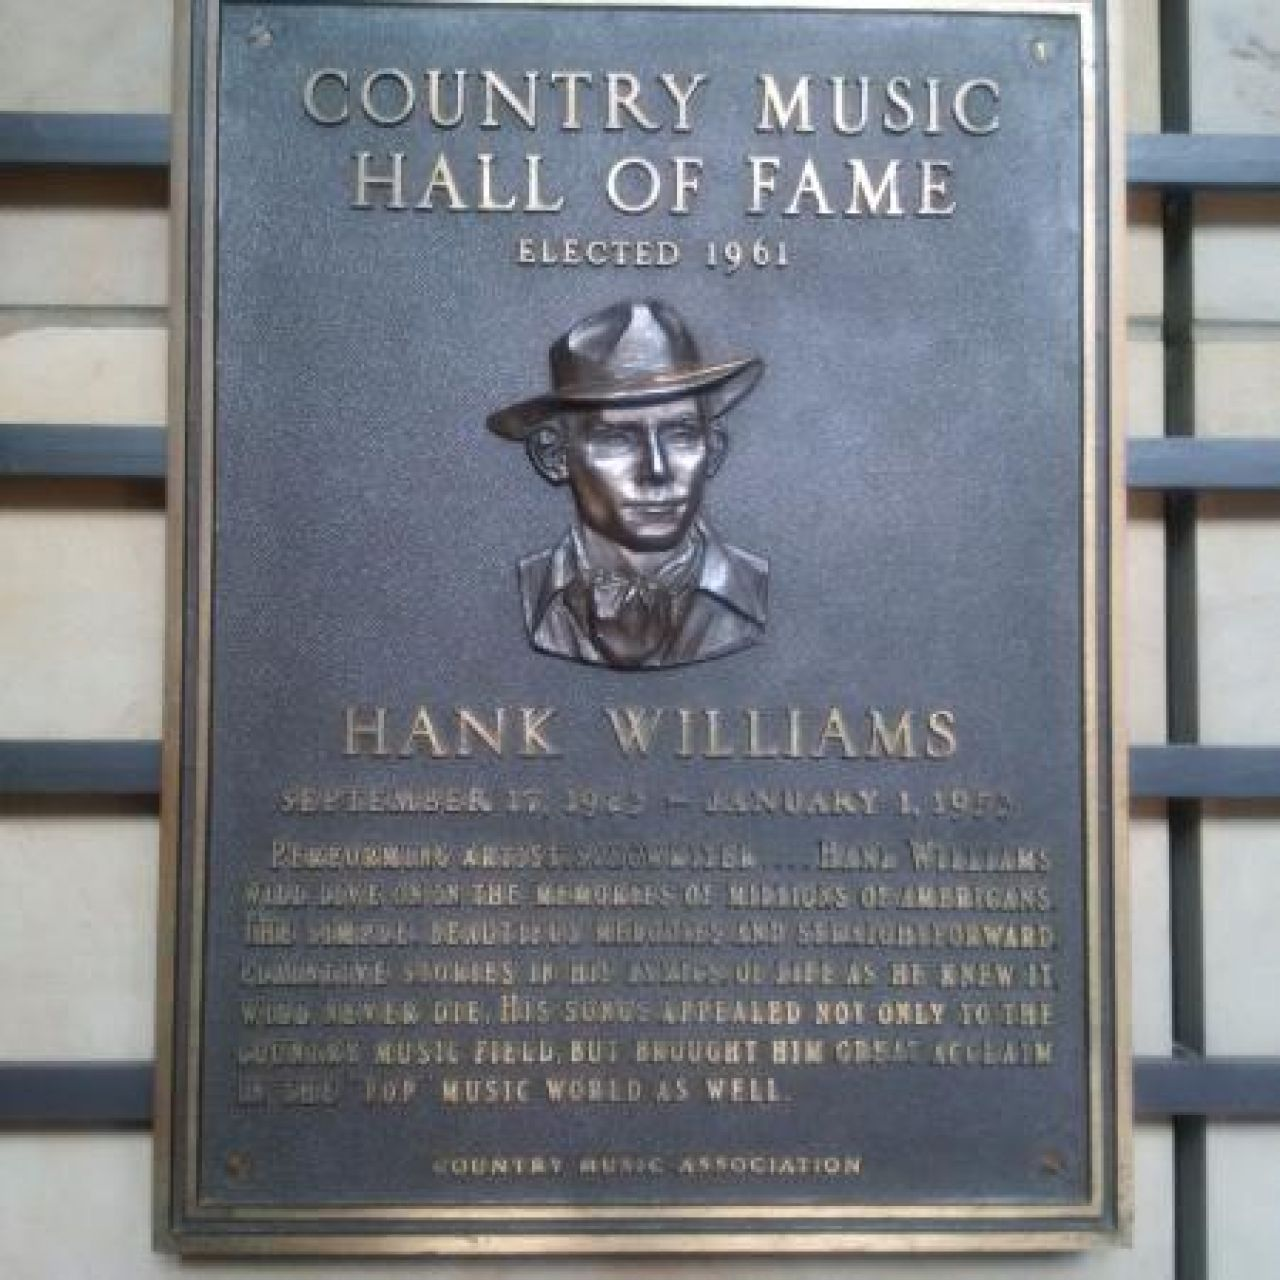 Hank Williams Country Music Hall of Fame Plaque